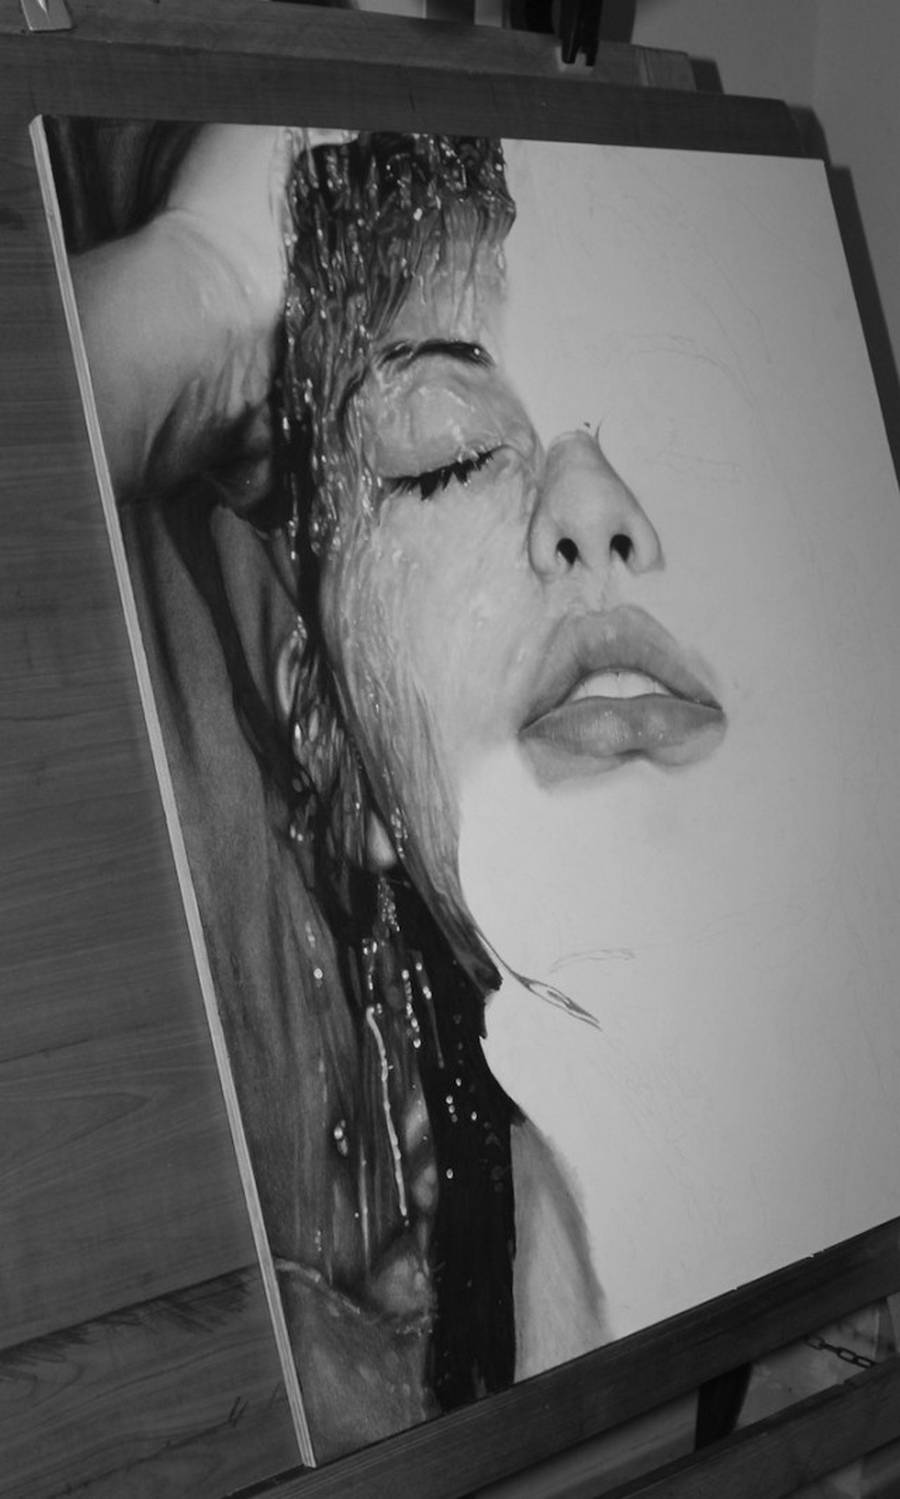 Photorealistic Drawings